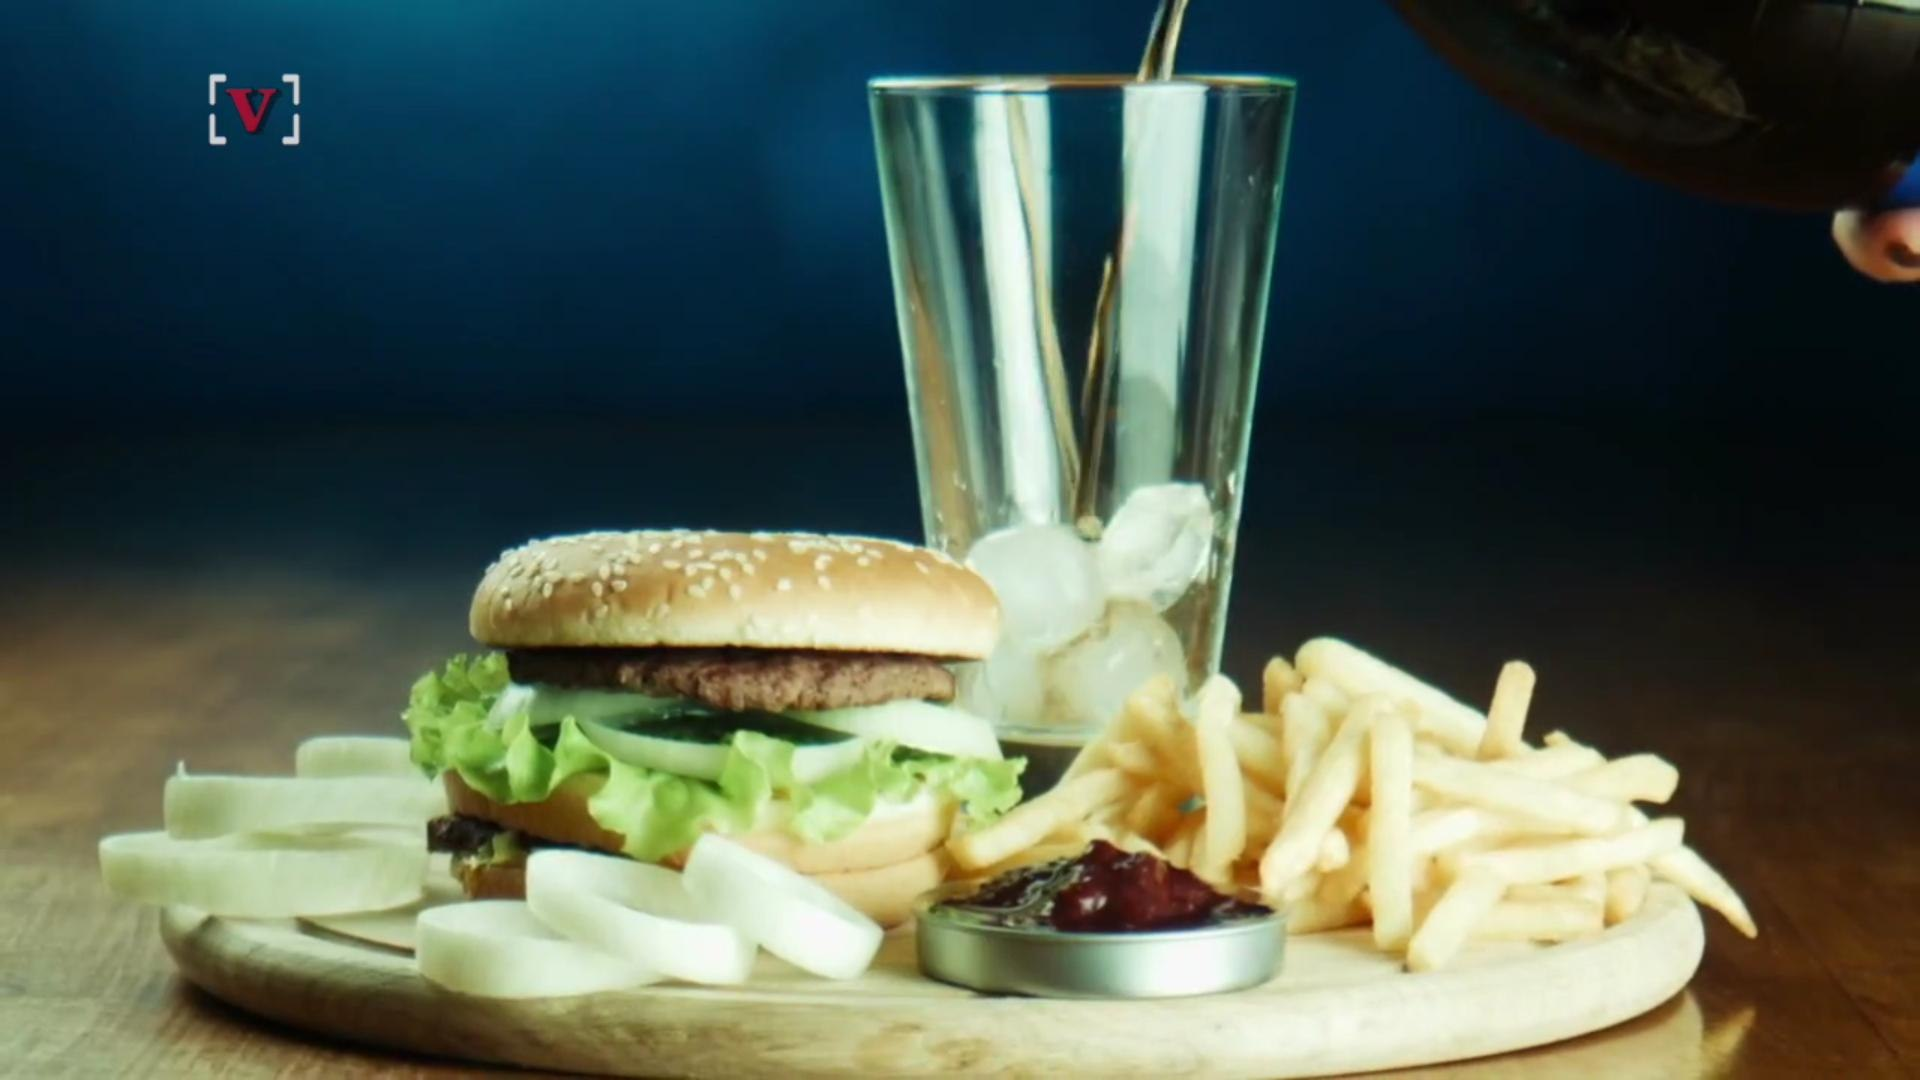 Traces of Poop Bacteria Found At These Fast Food Chains